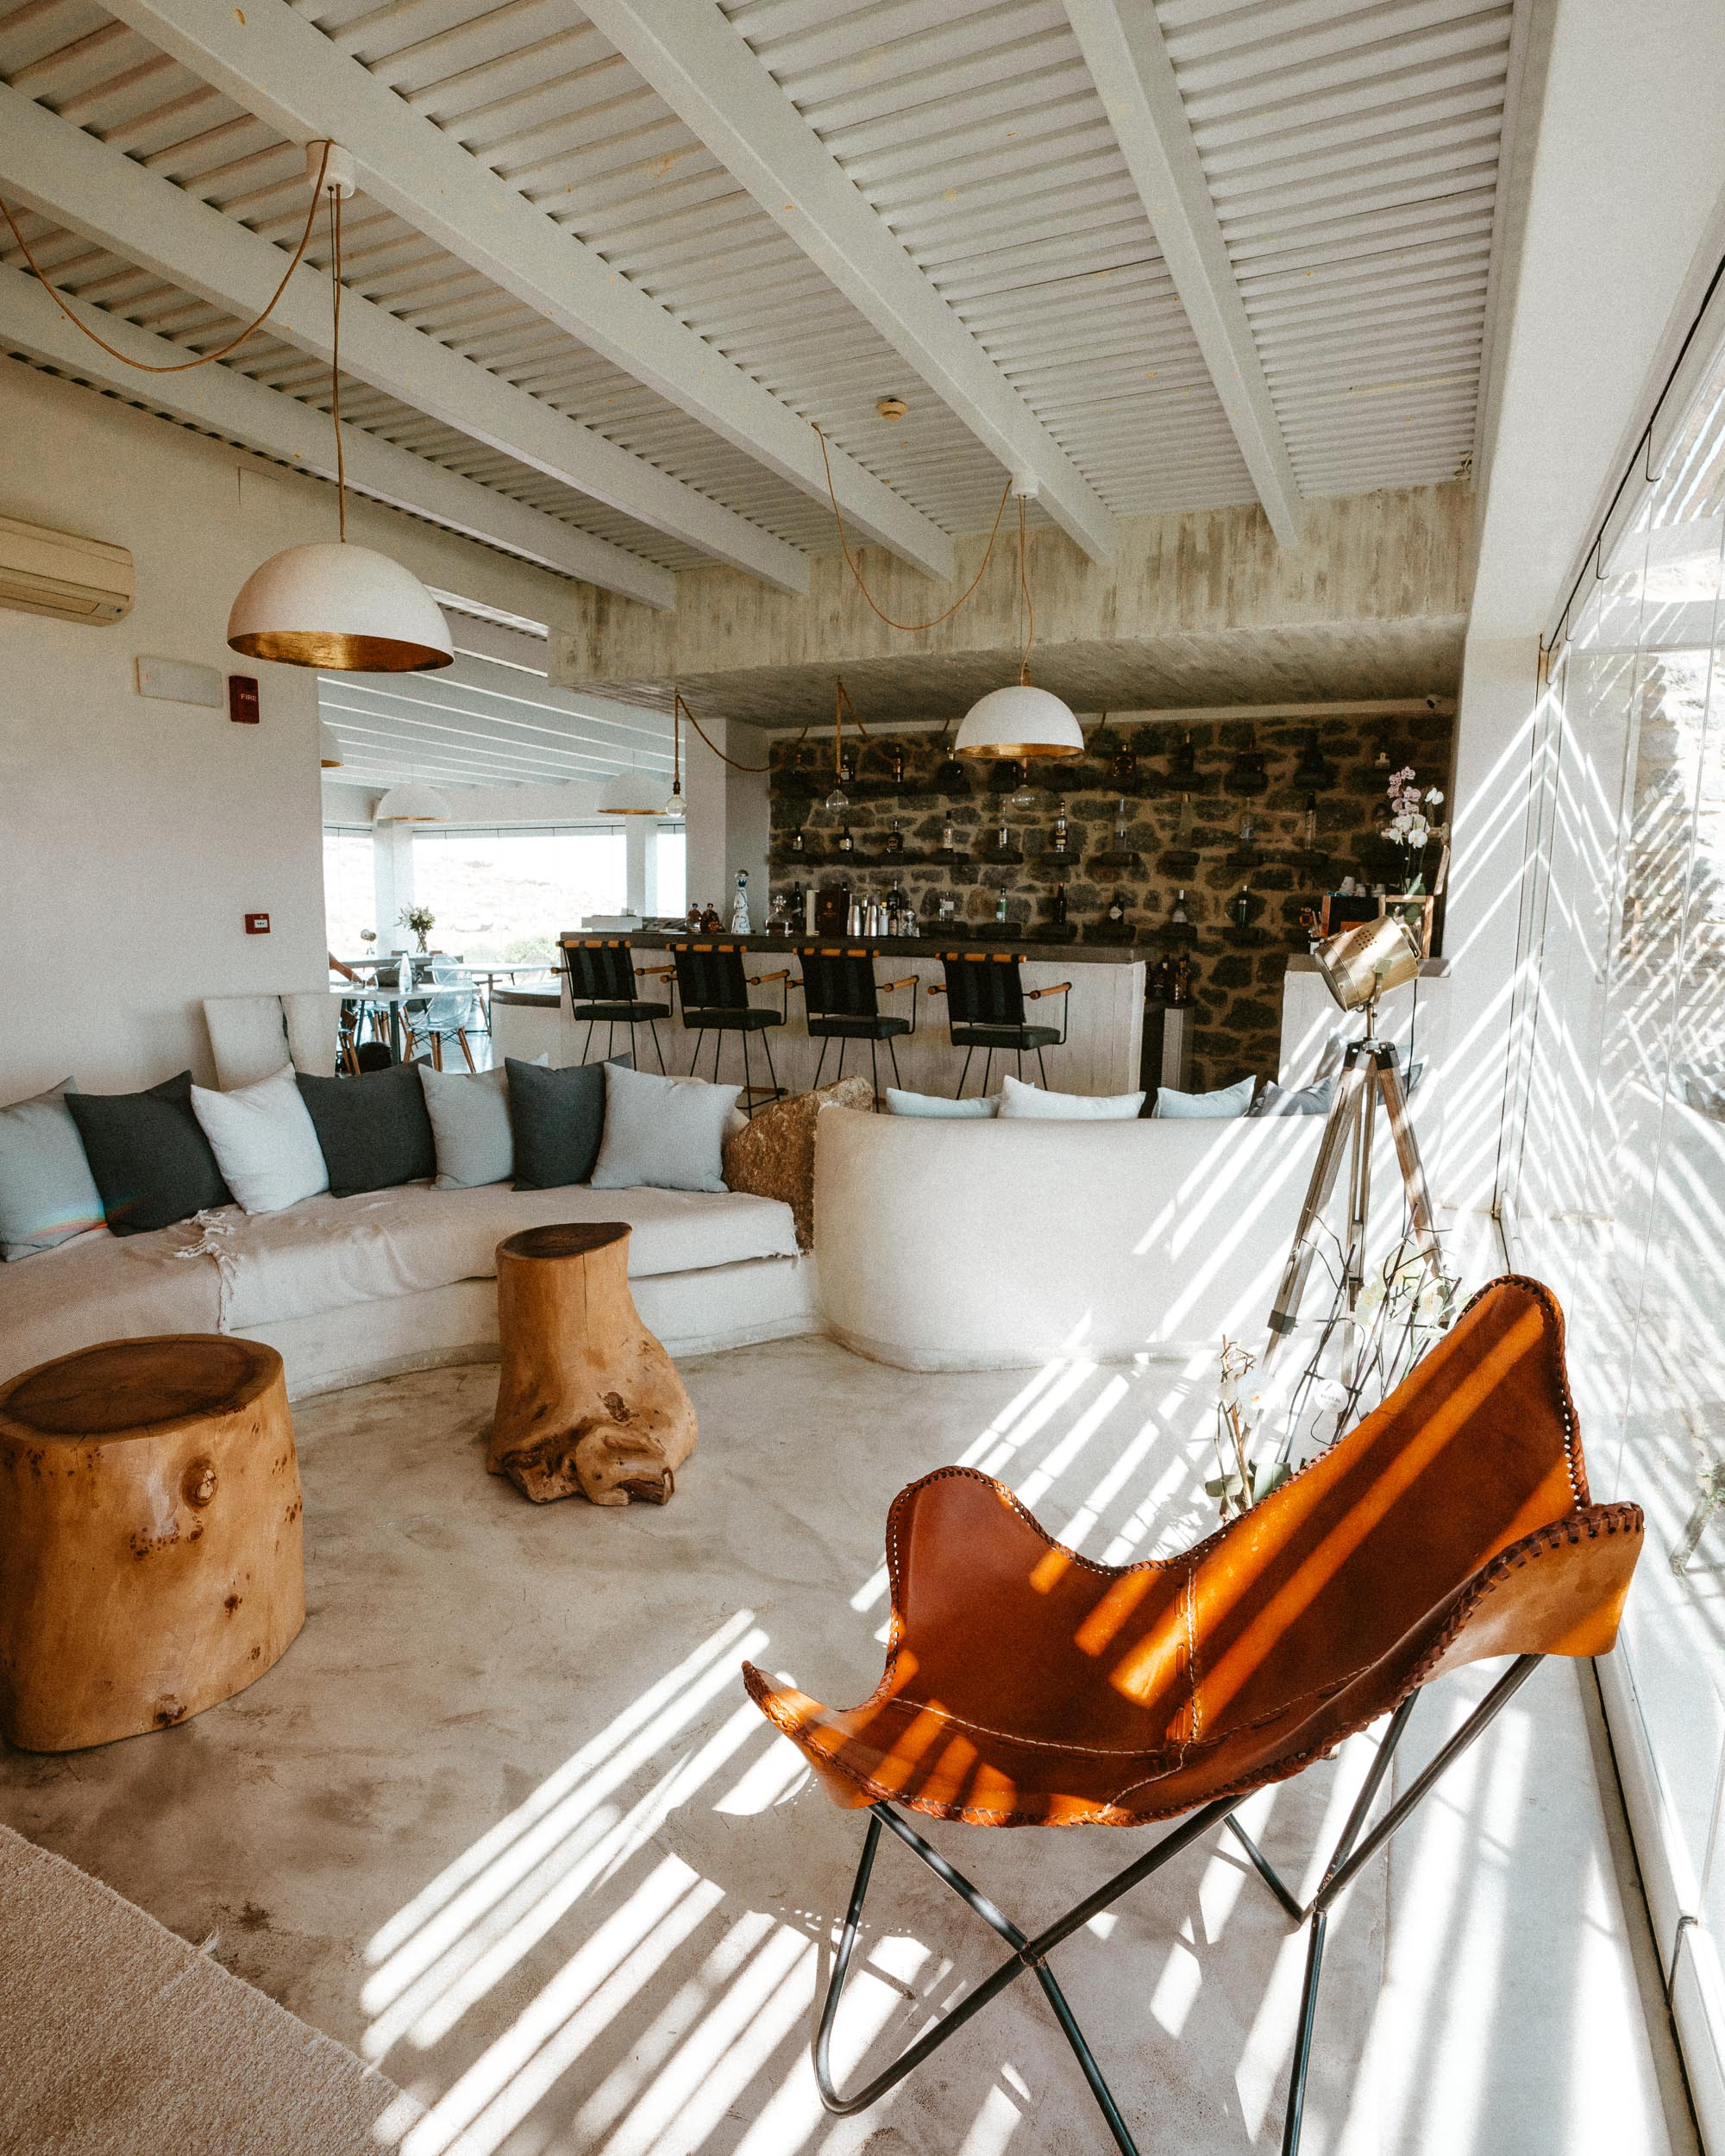 Naxian Collection hotel lobby in Naxos, Greek Islands via @finduslost